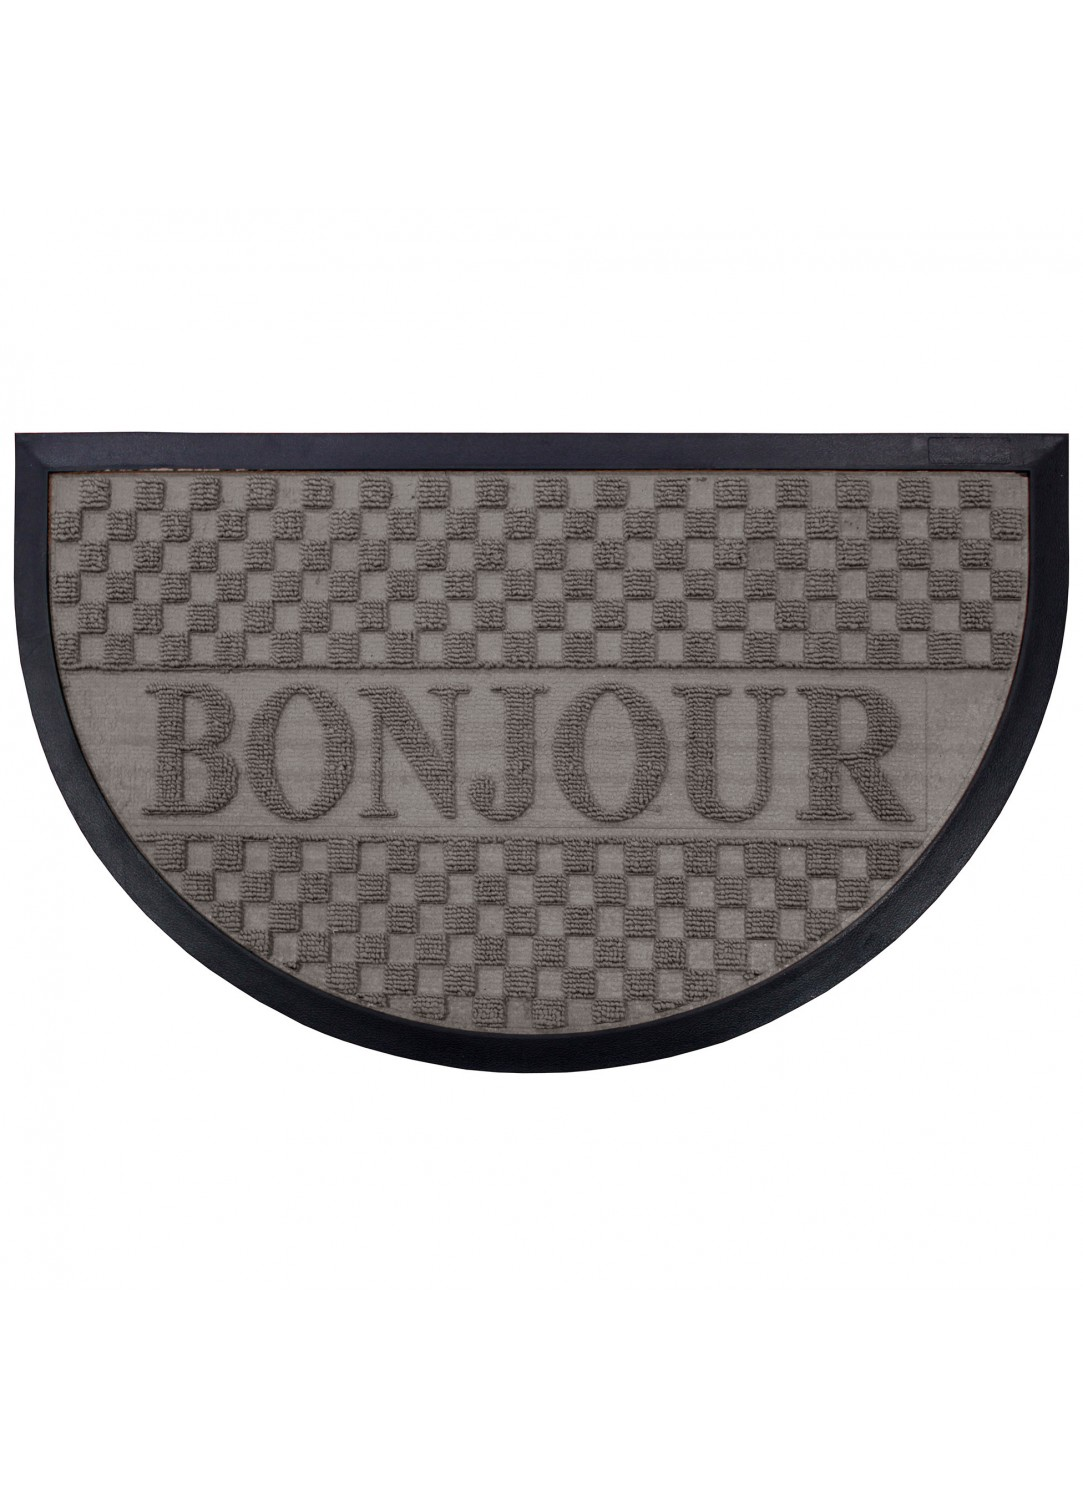 tapis d entr e demi lune reliefs bonjour gris noir naturel homemaison vente en. Black Bedroom Furniture Sets. Home Design Ideas